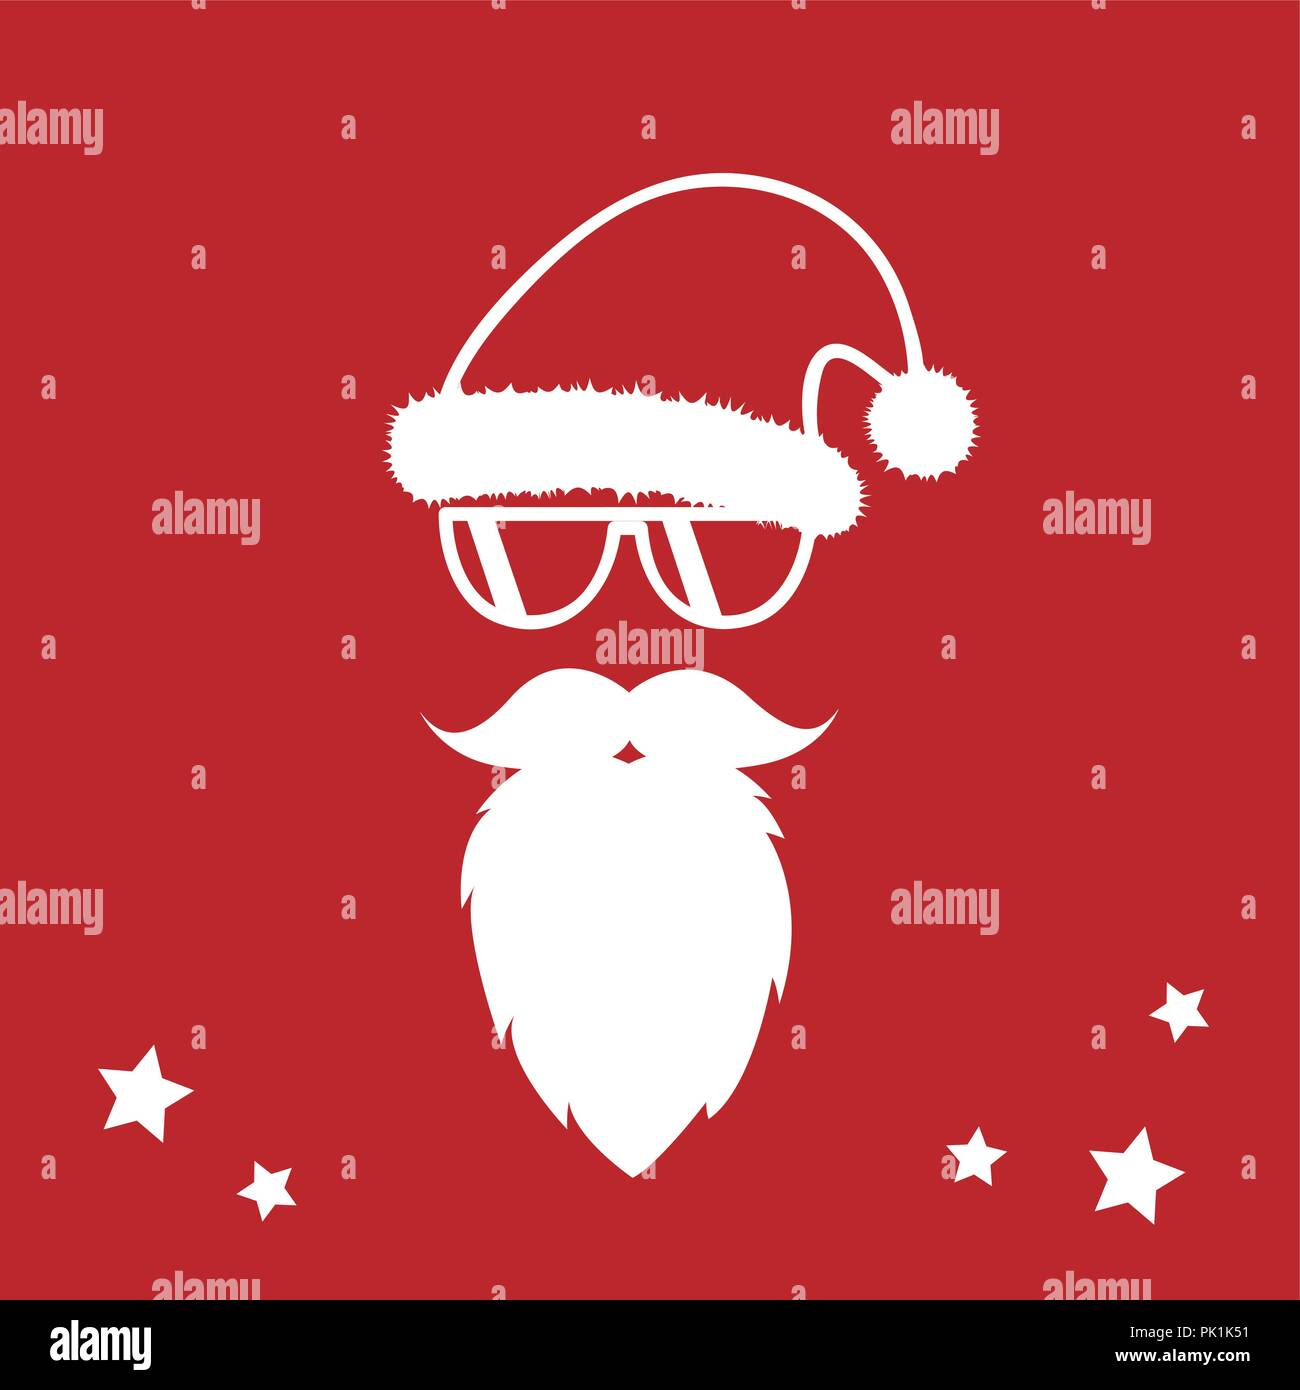 Christmas Card Design.Hipster Santa Claus With Cool Beard And Sunglasses Merry